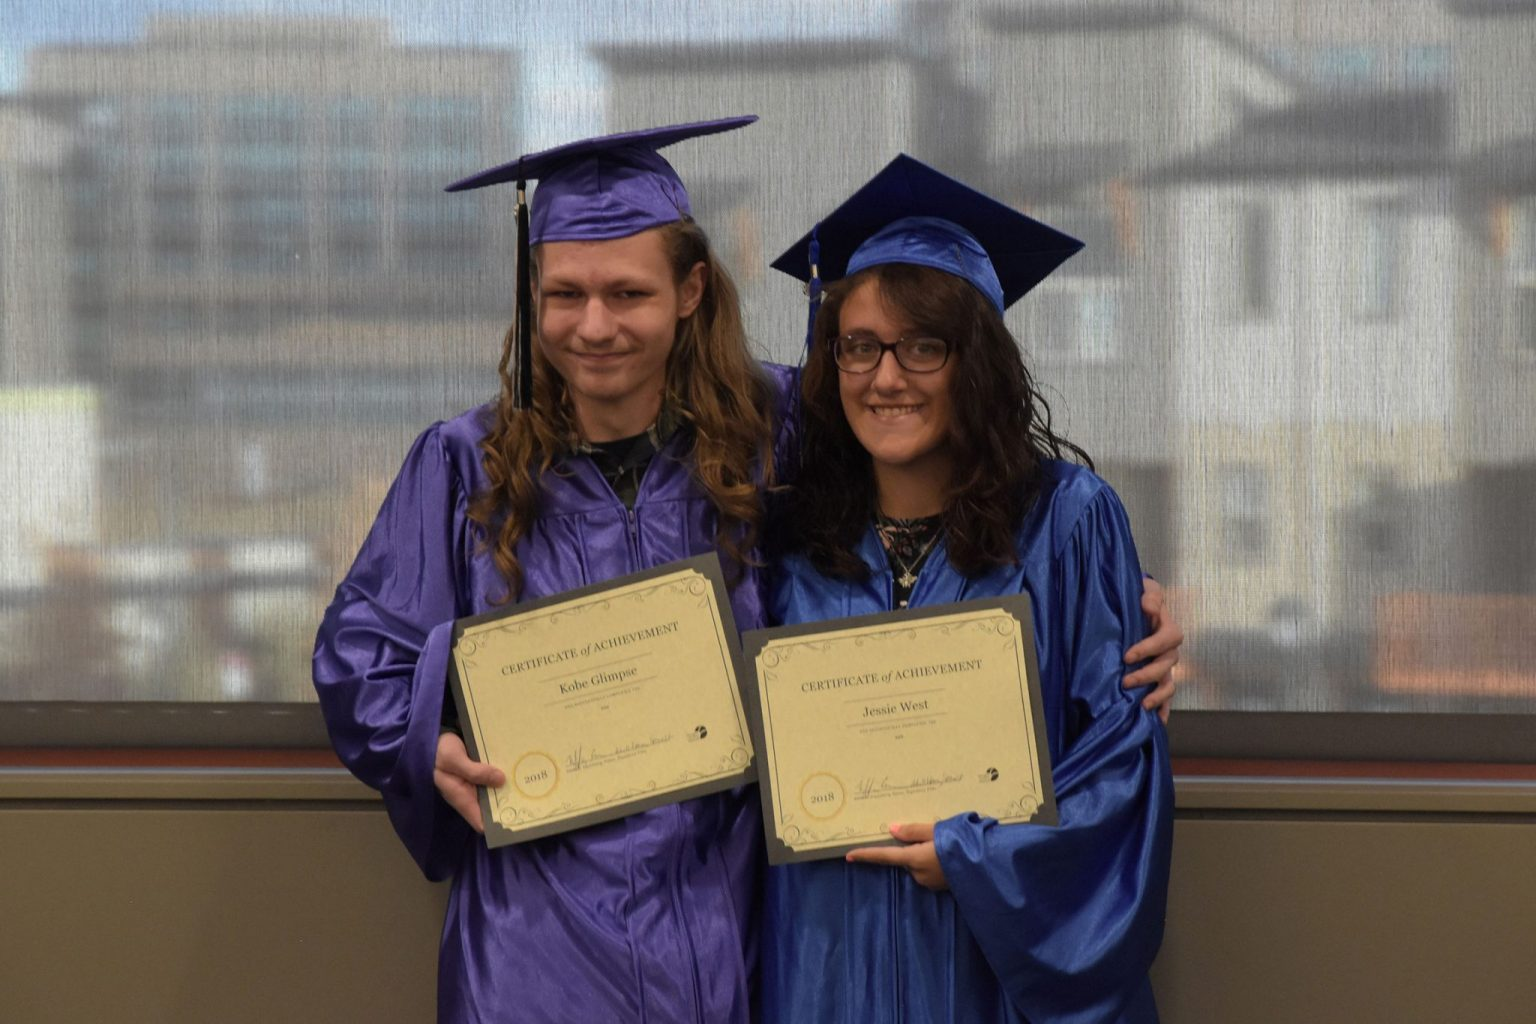 DCL celebrated two GED graduates in a December 2018 cap and gown ceremony. The 2019 graduation includes seven graduates, the most so far for the library.